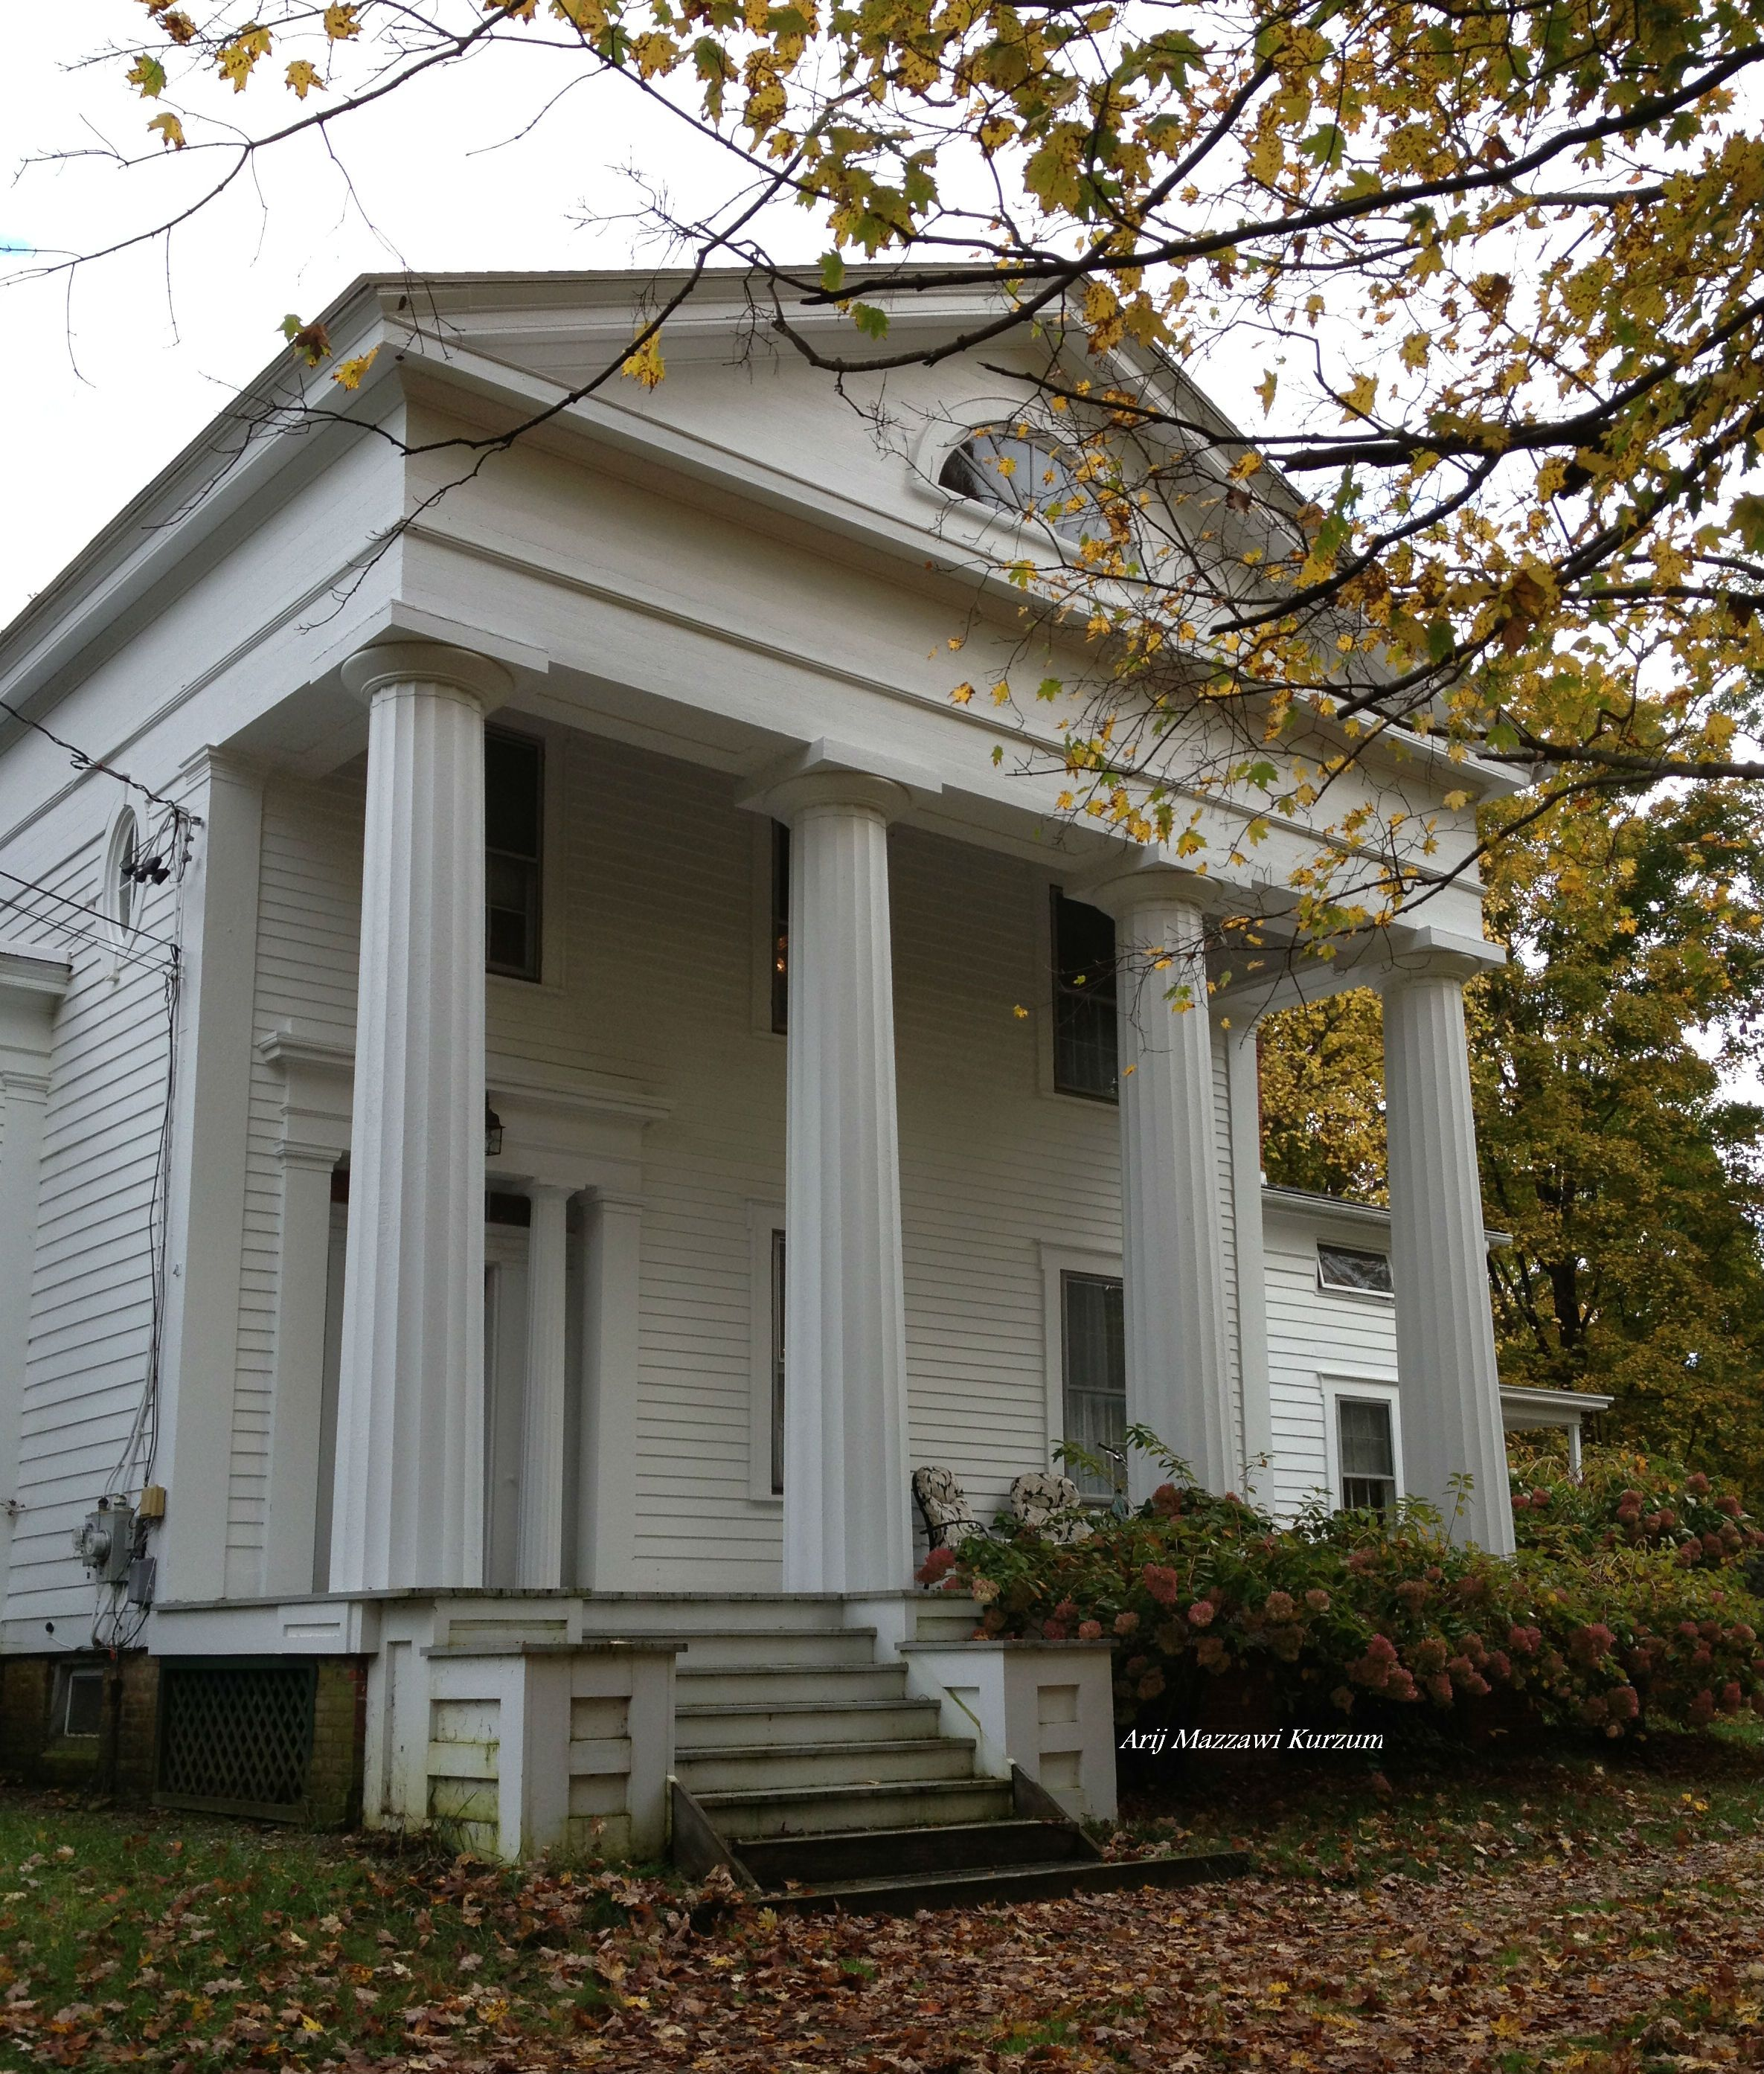 Greek Revival Farmhouse Architecture Greek Revival American Architecture Pinterest